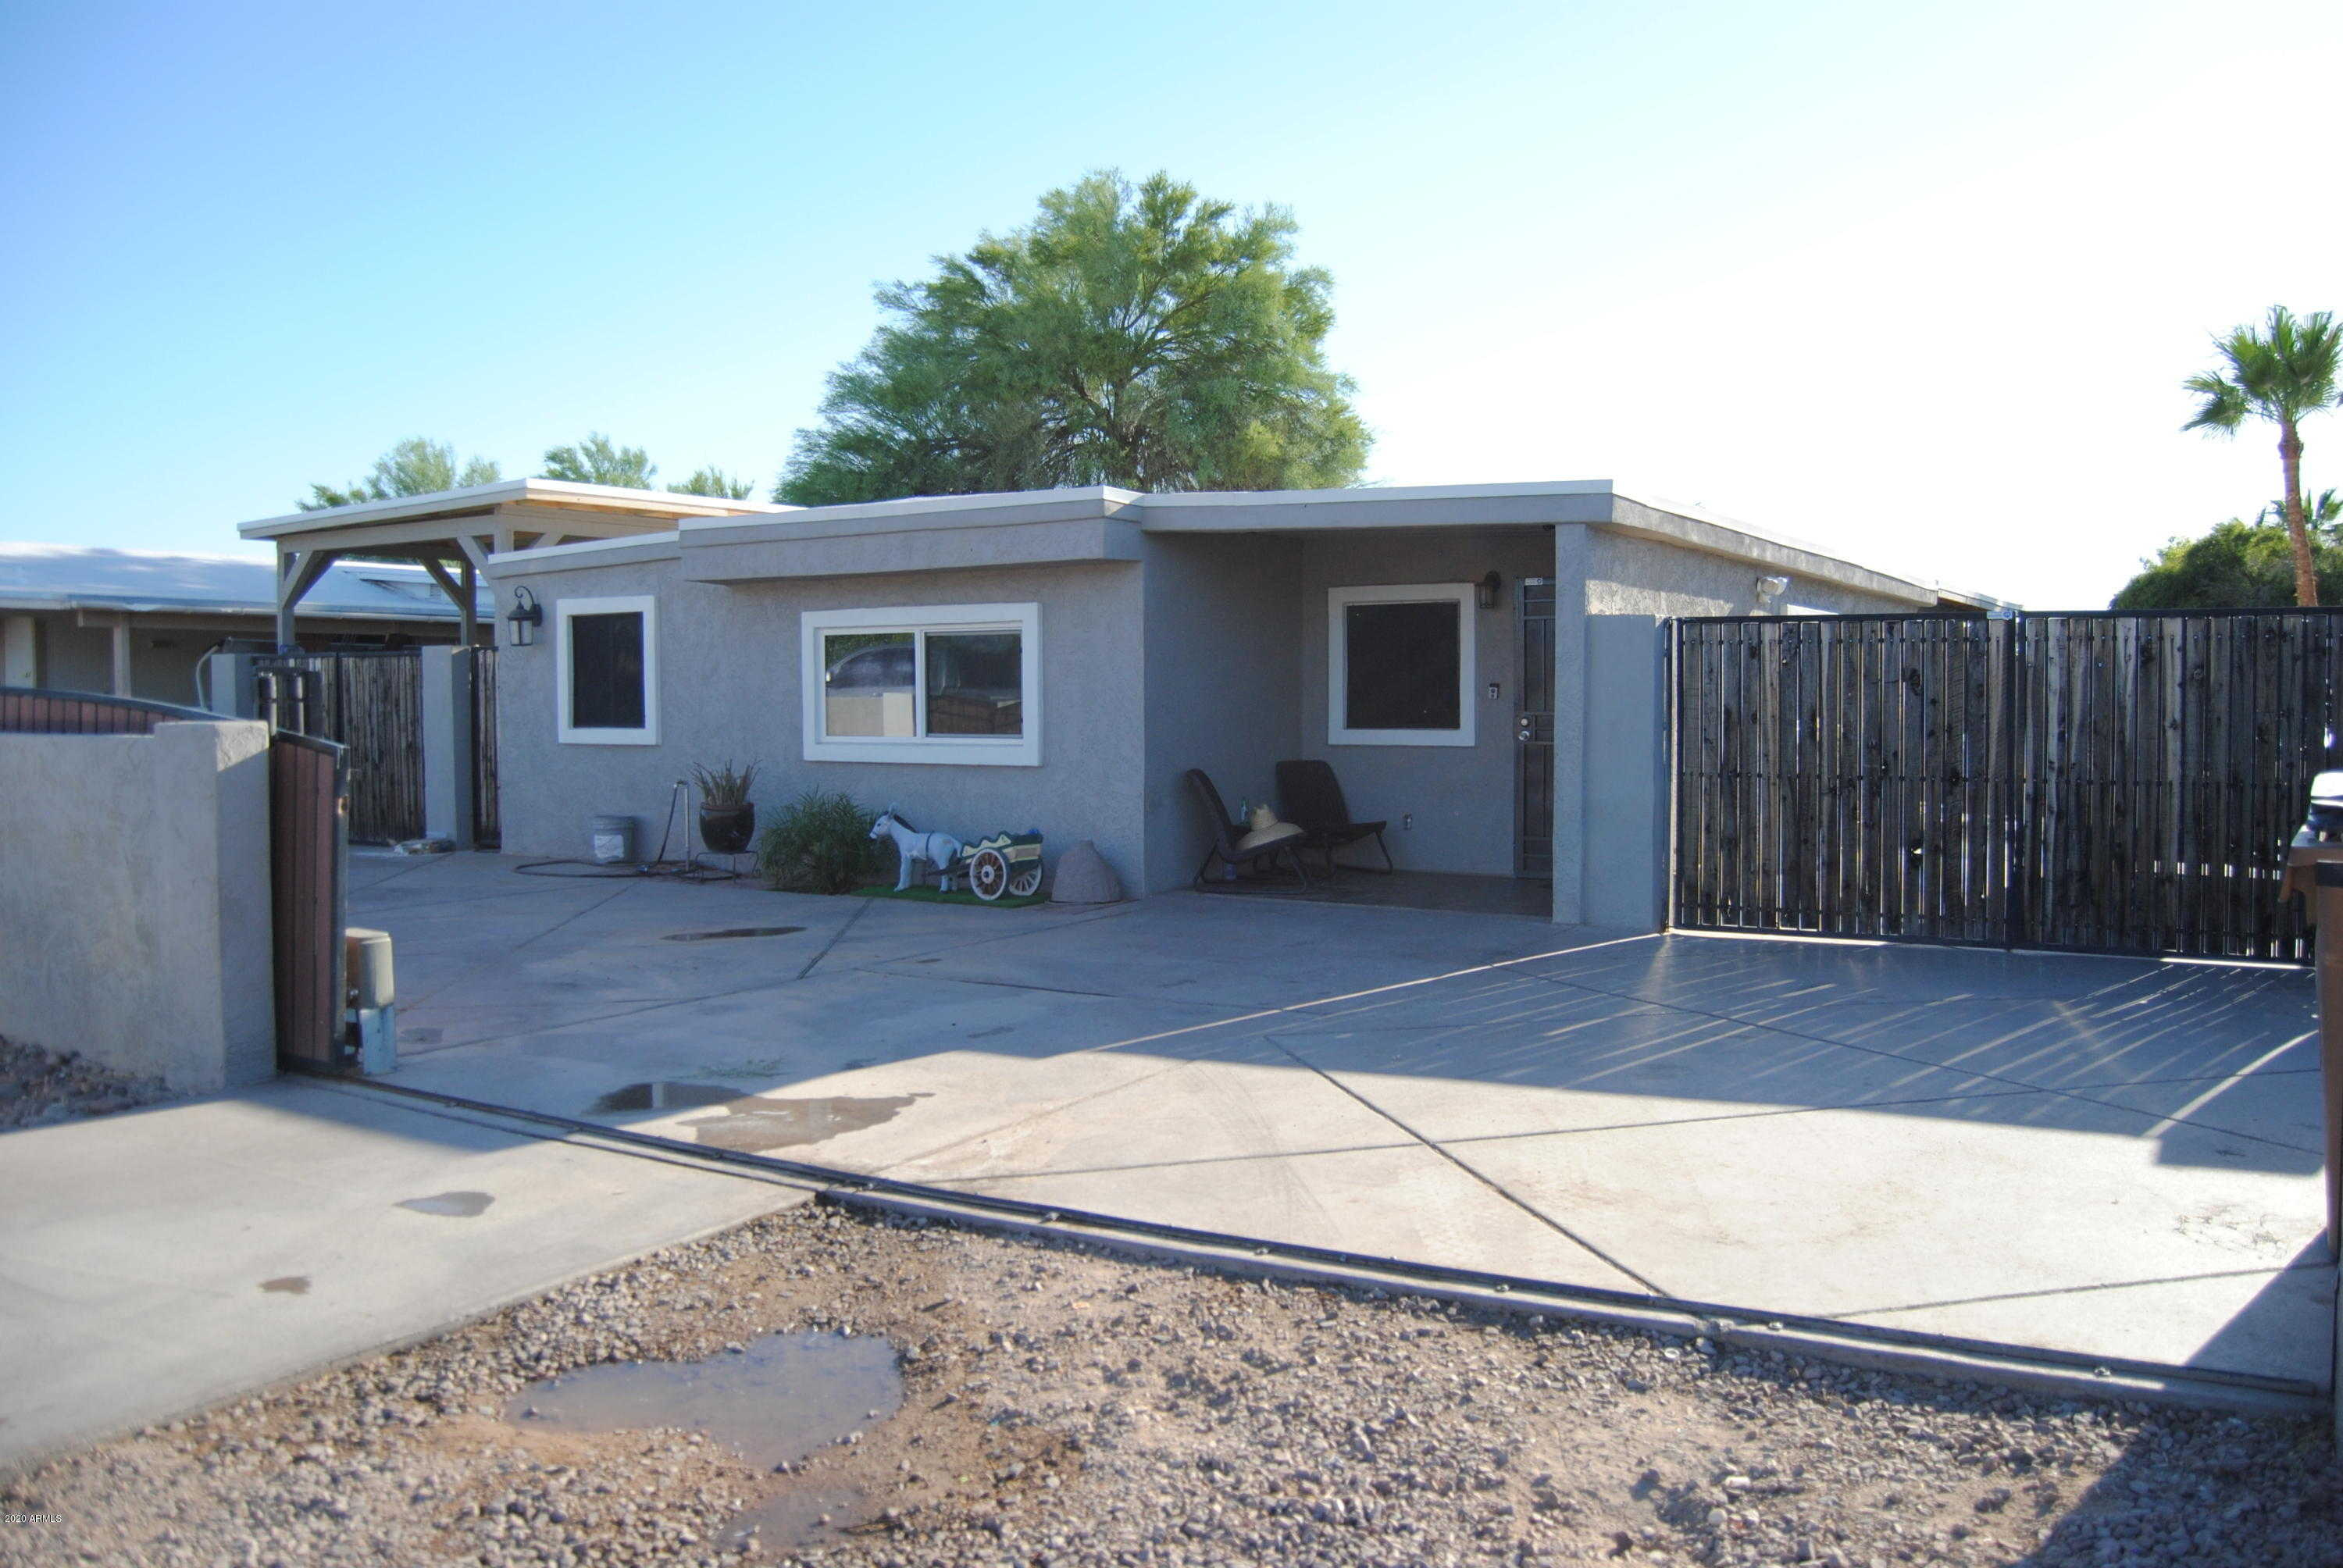 $145,000 - 4Br/1Ba -  for Sale in Superstition Country 4, Mesa